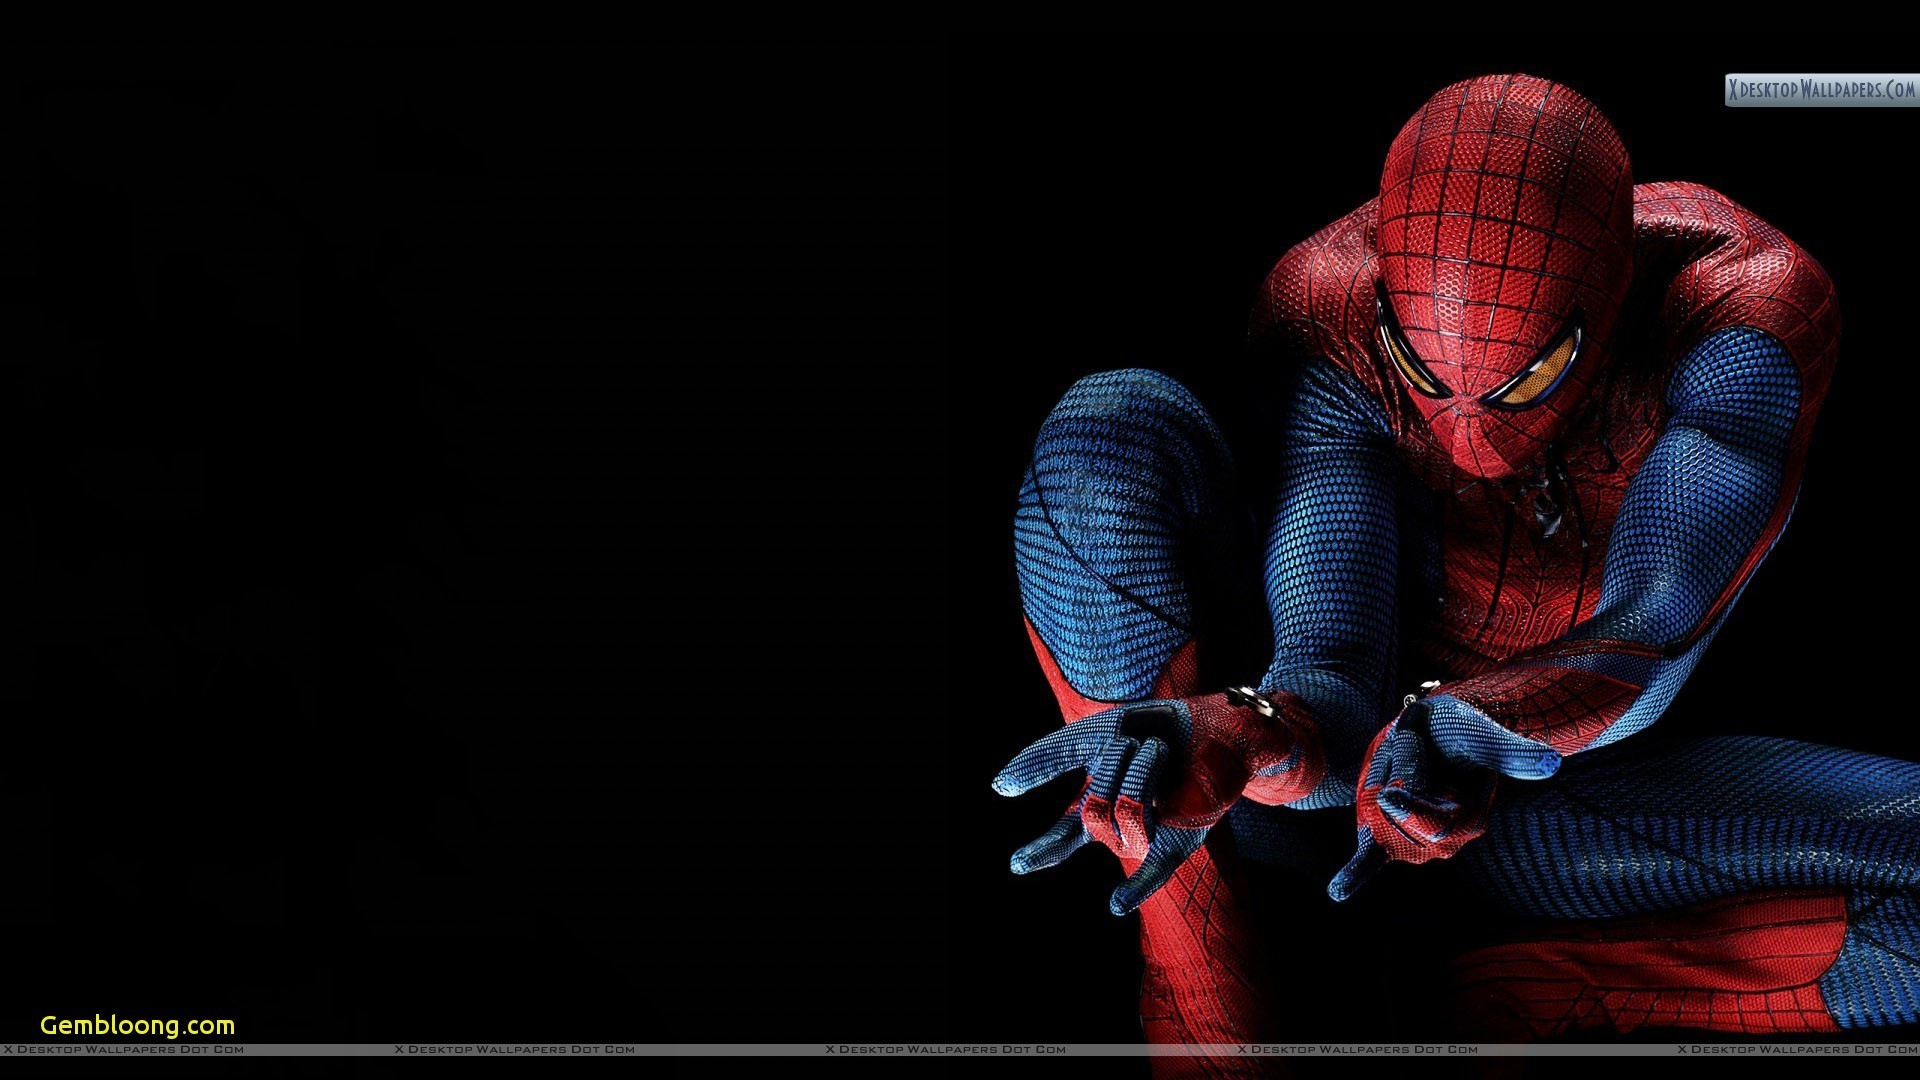 Spiderman s wallpaper x